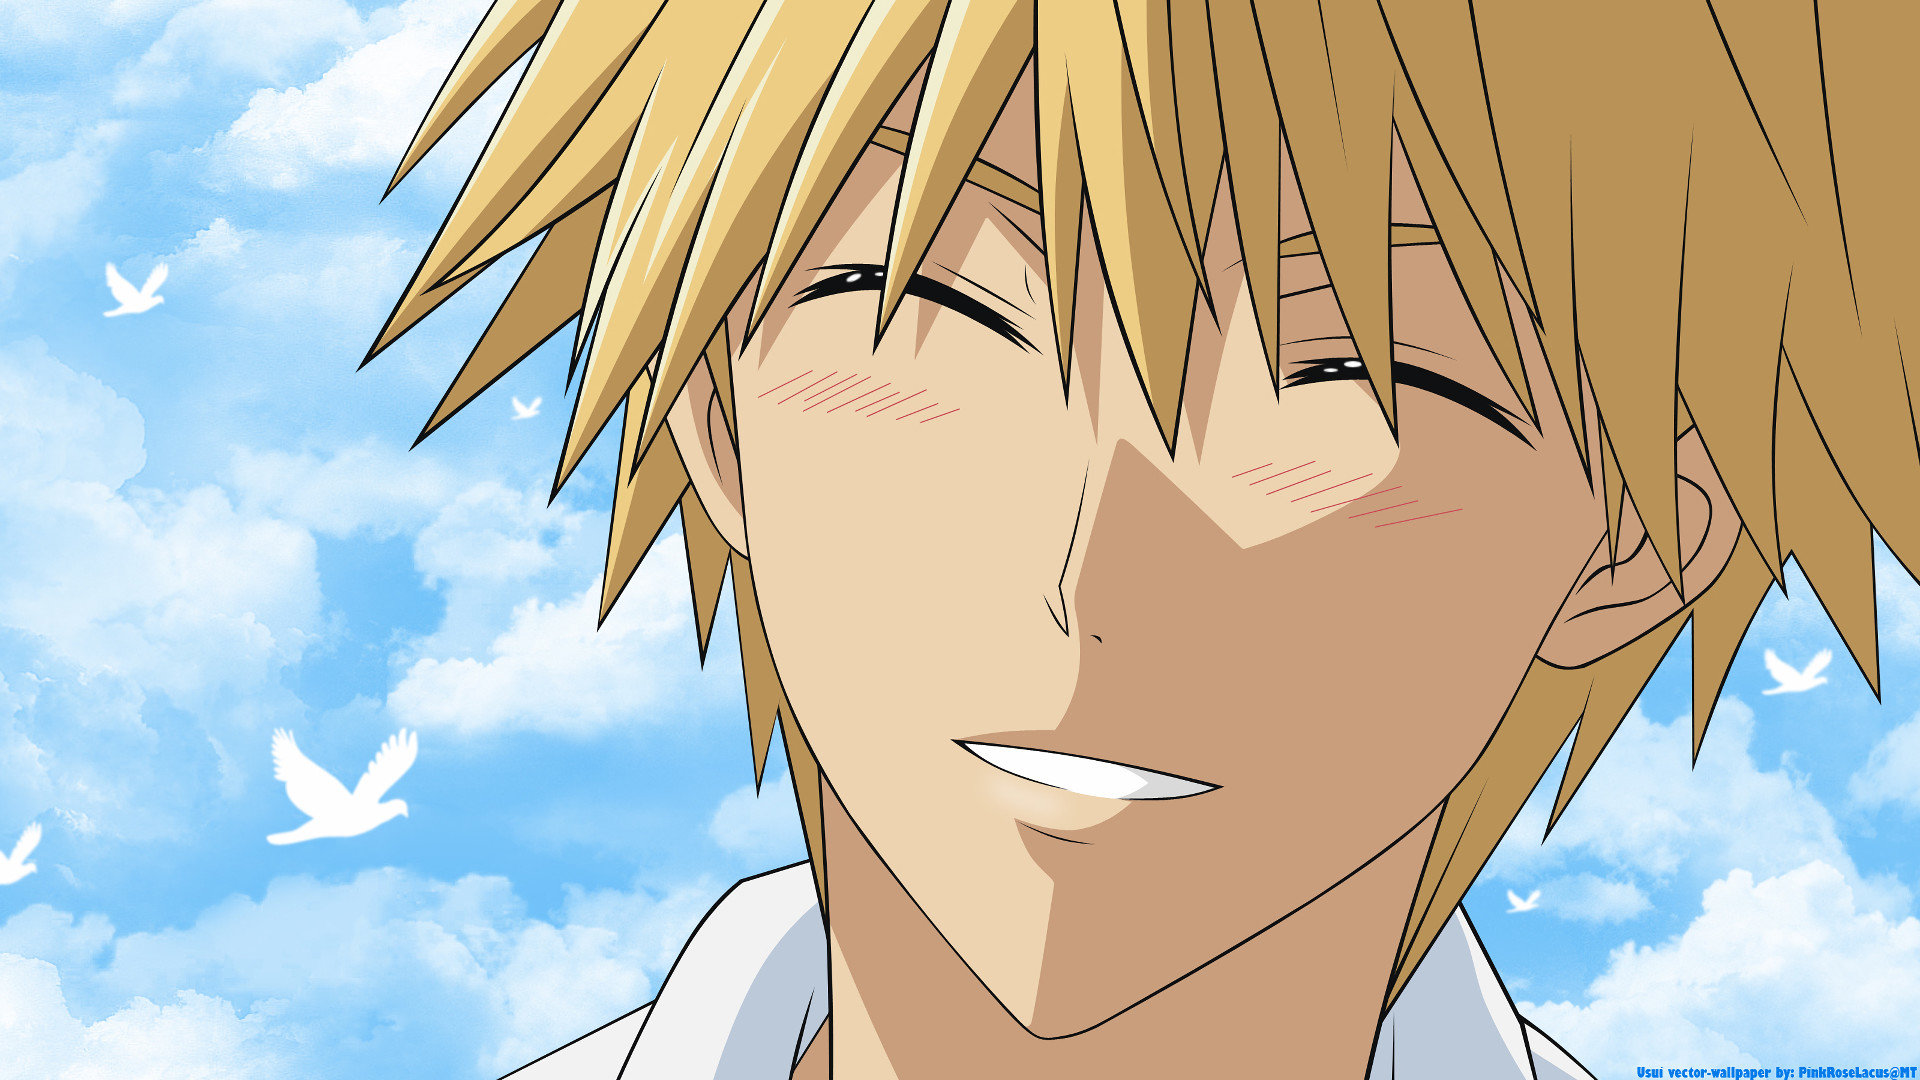 Best Maid Sama! background ID:19134 for High Resolution 1080p PC